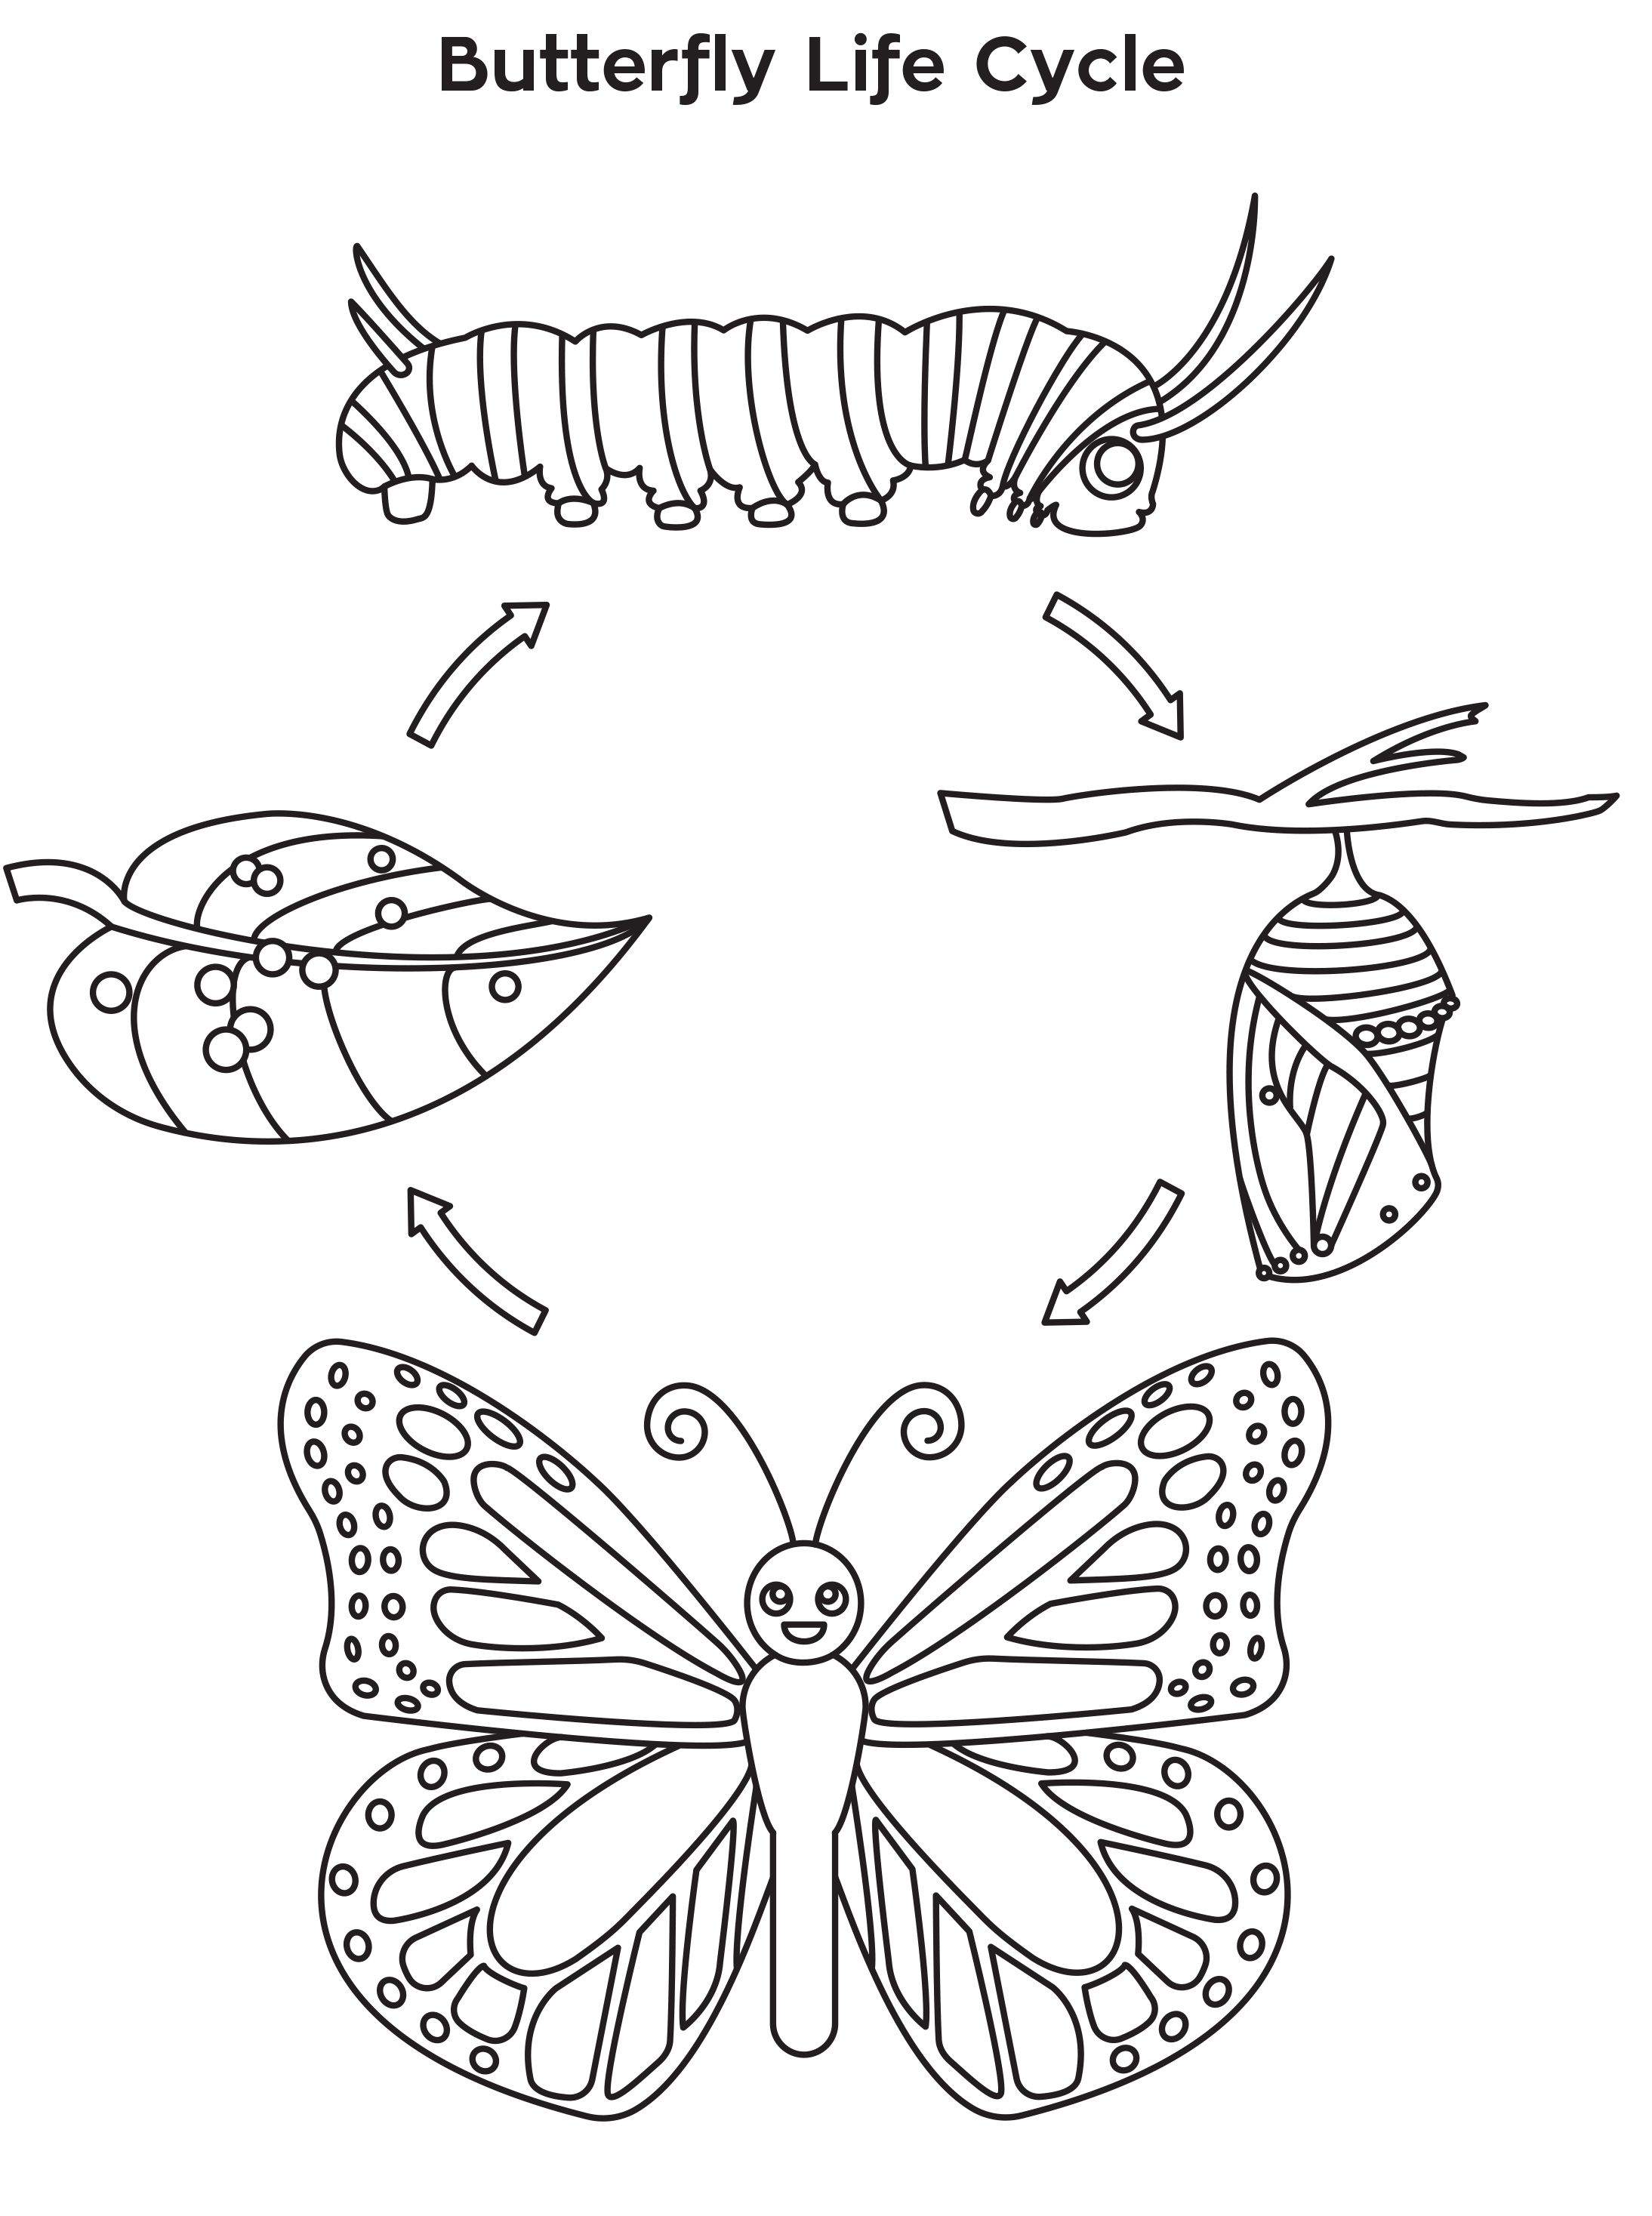 Life Cycle Of A Butterfly Coloring Page Free Printable